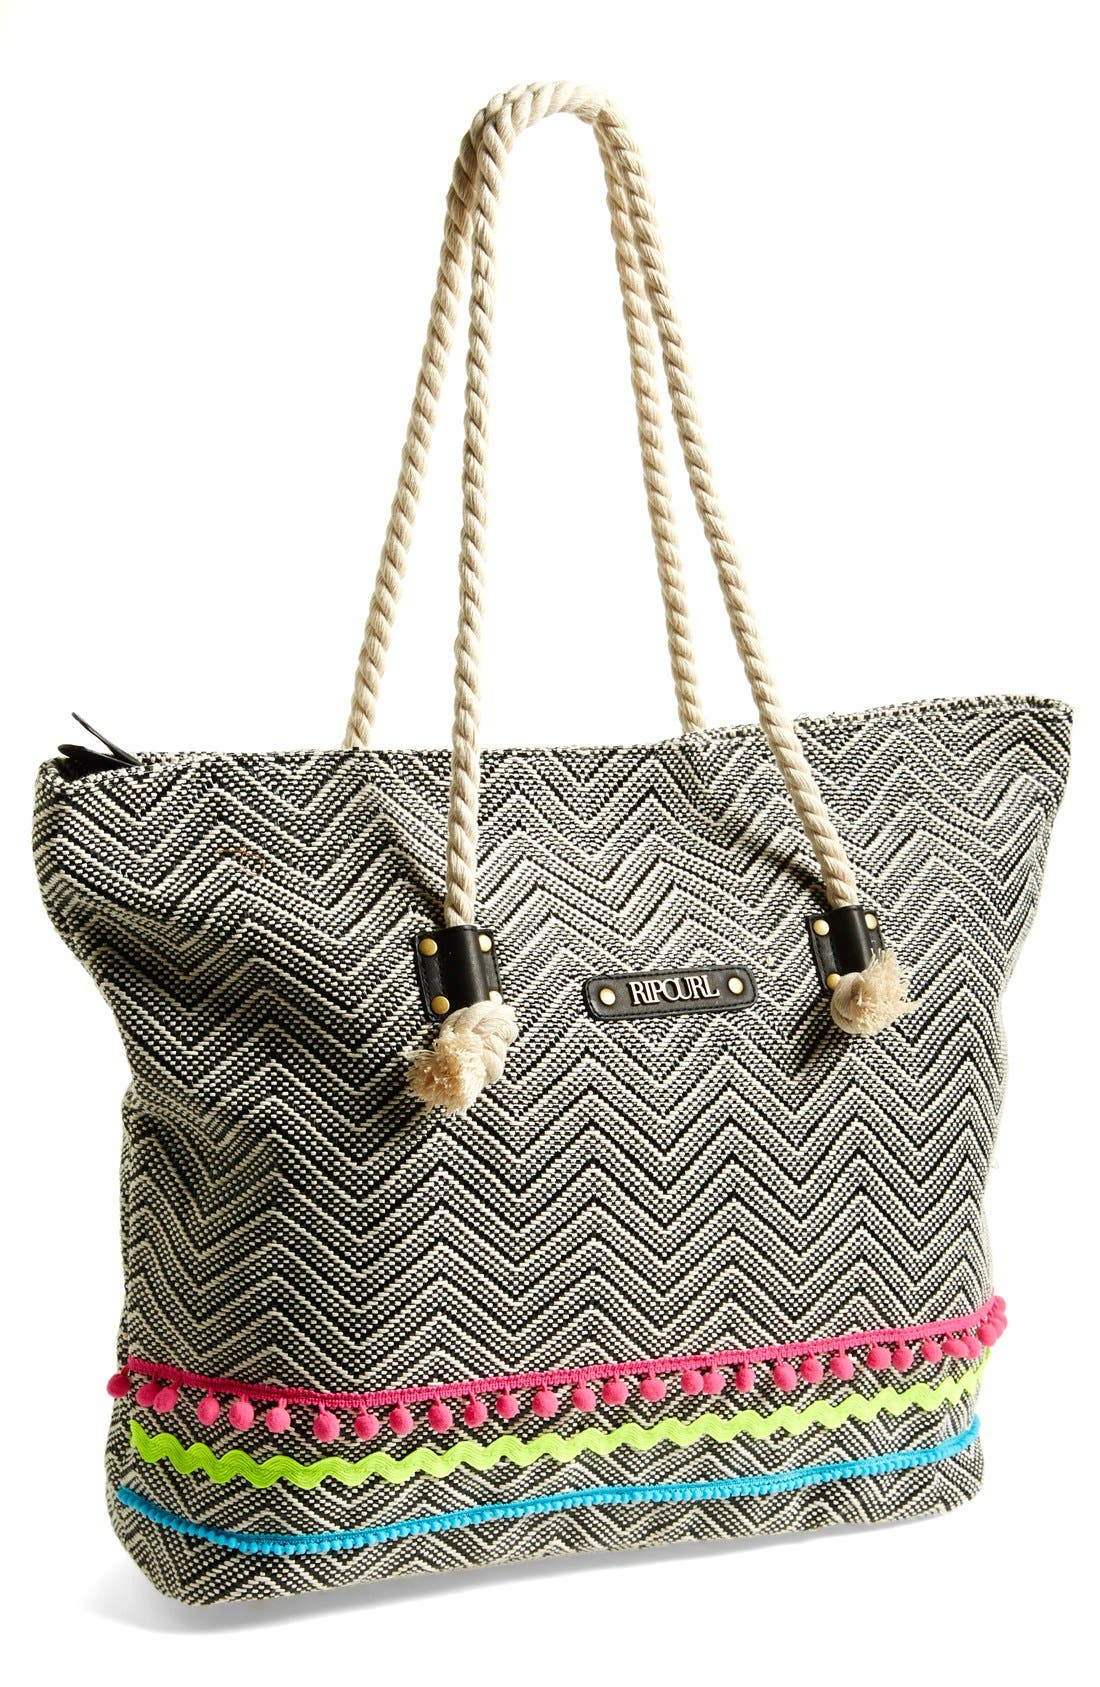 RIP CURL 'Haleiwa' Straw Beach Tote, Main, color, 001